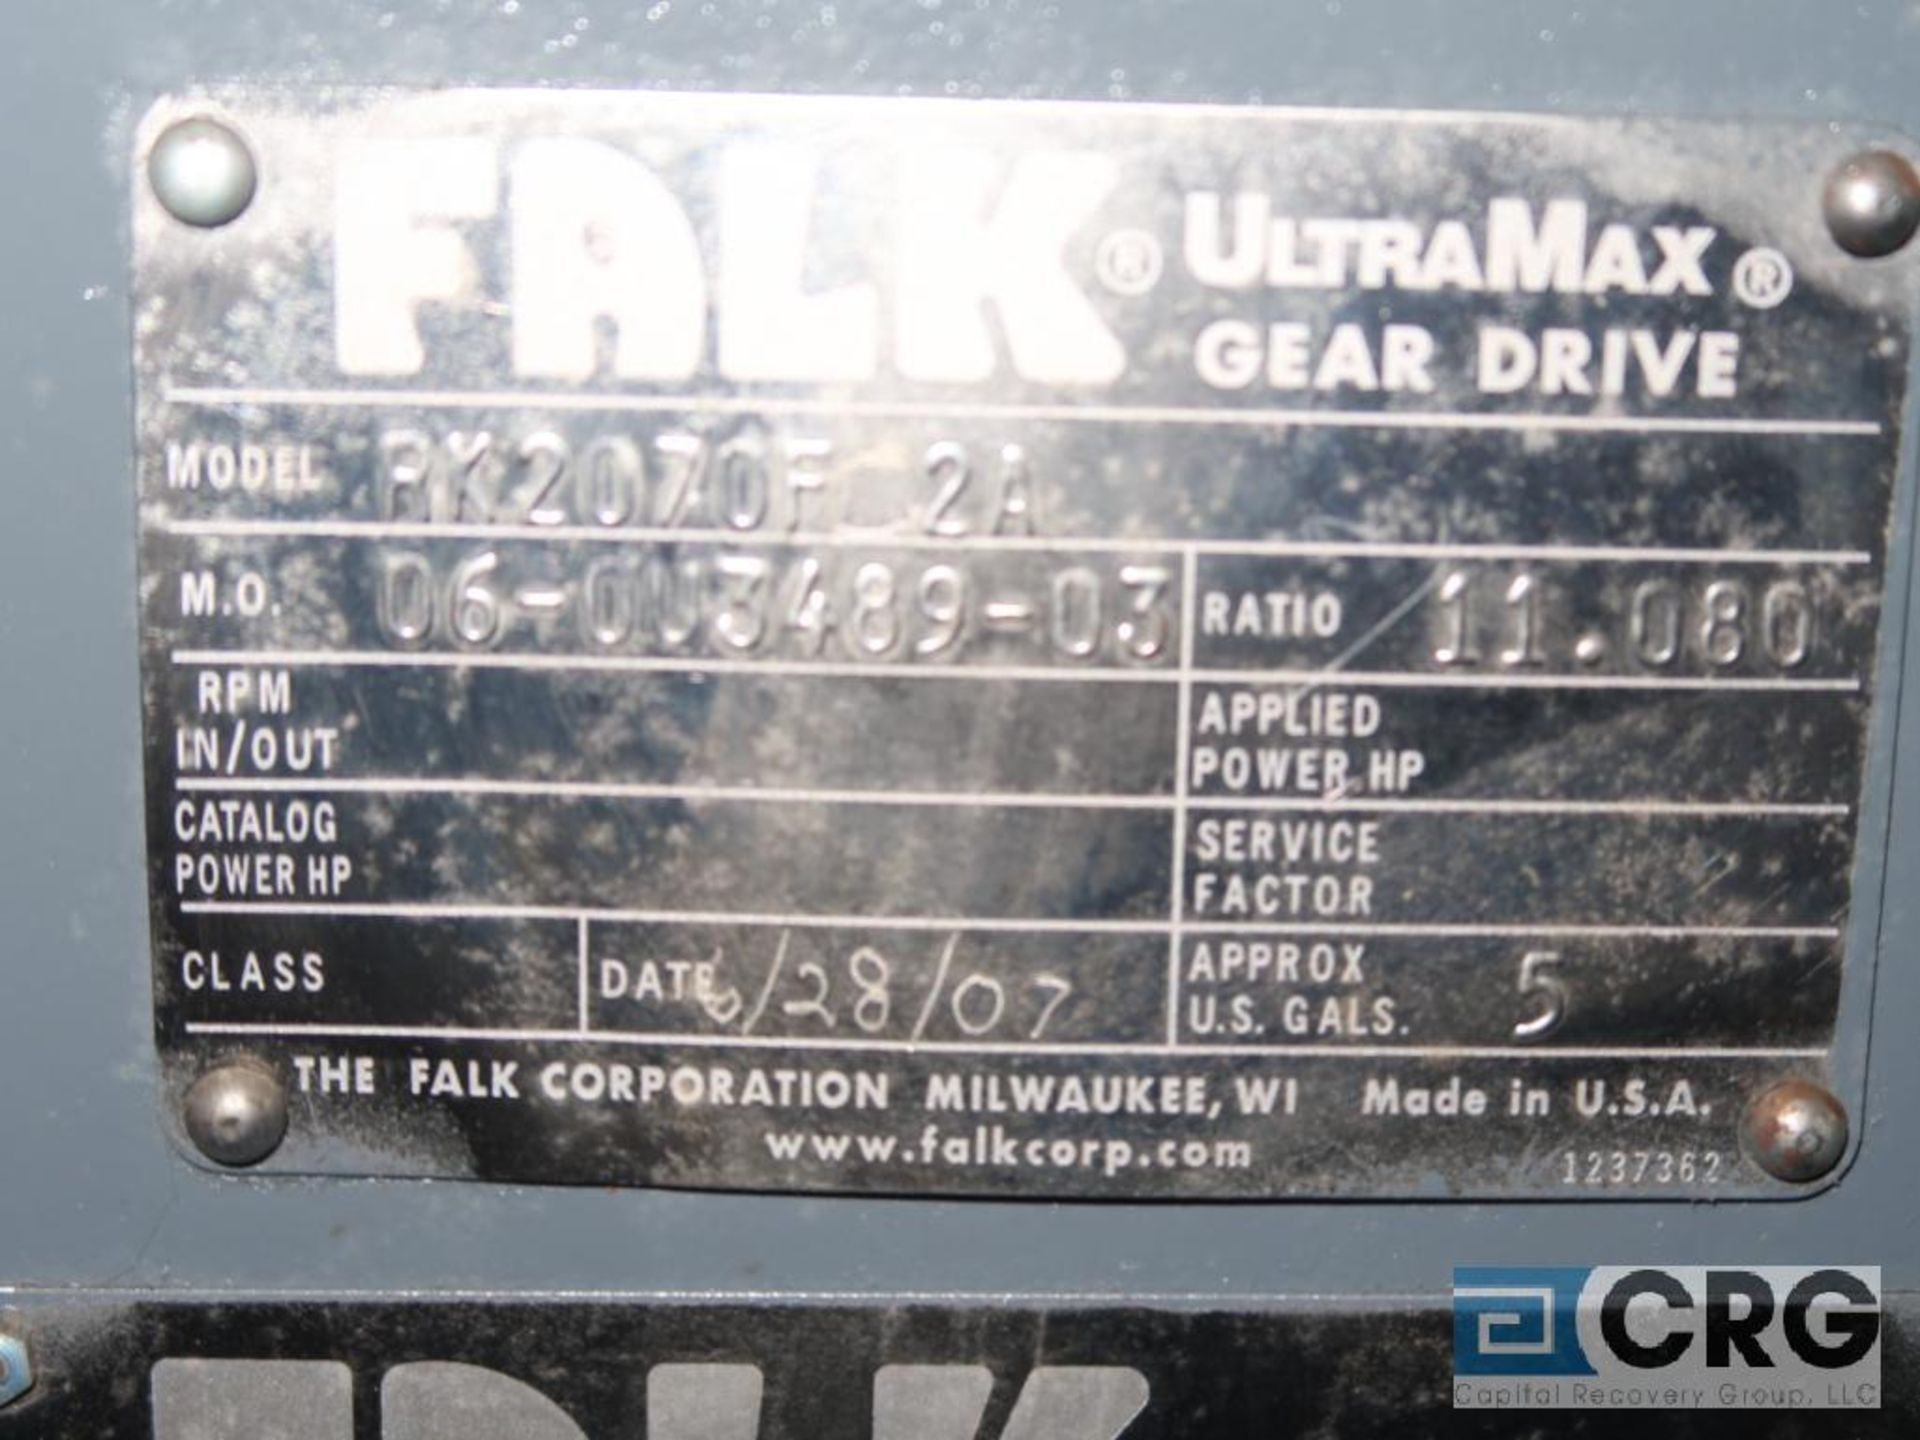 Falk RK 2070 FC2A gear drive, ratio-11.080, s/n 348903 (Next Bay Cage Area) - Image 2 of 2